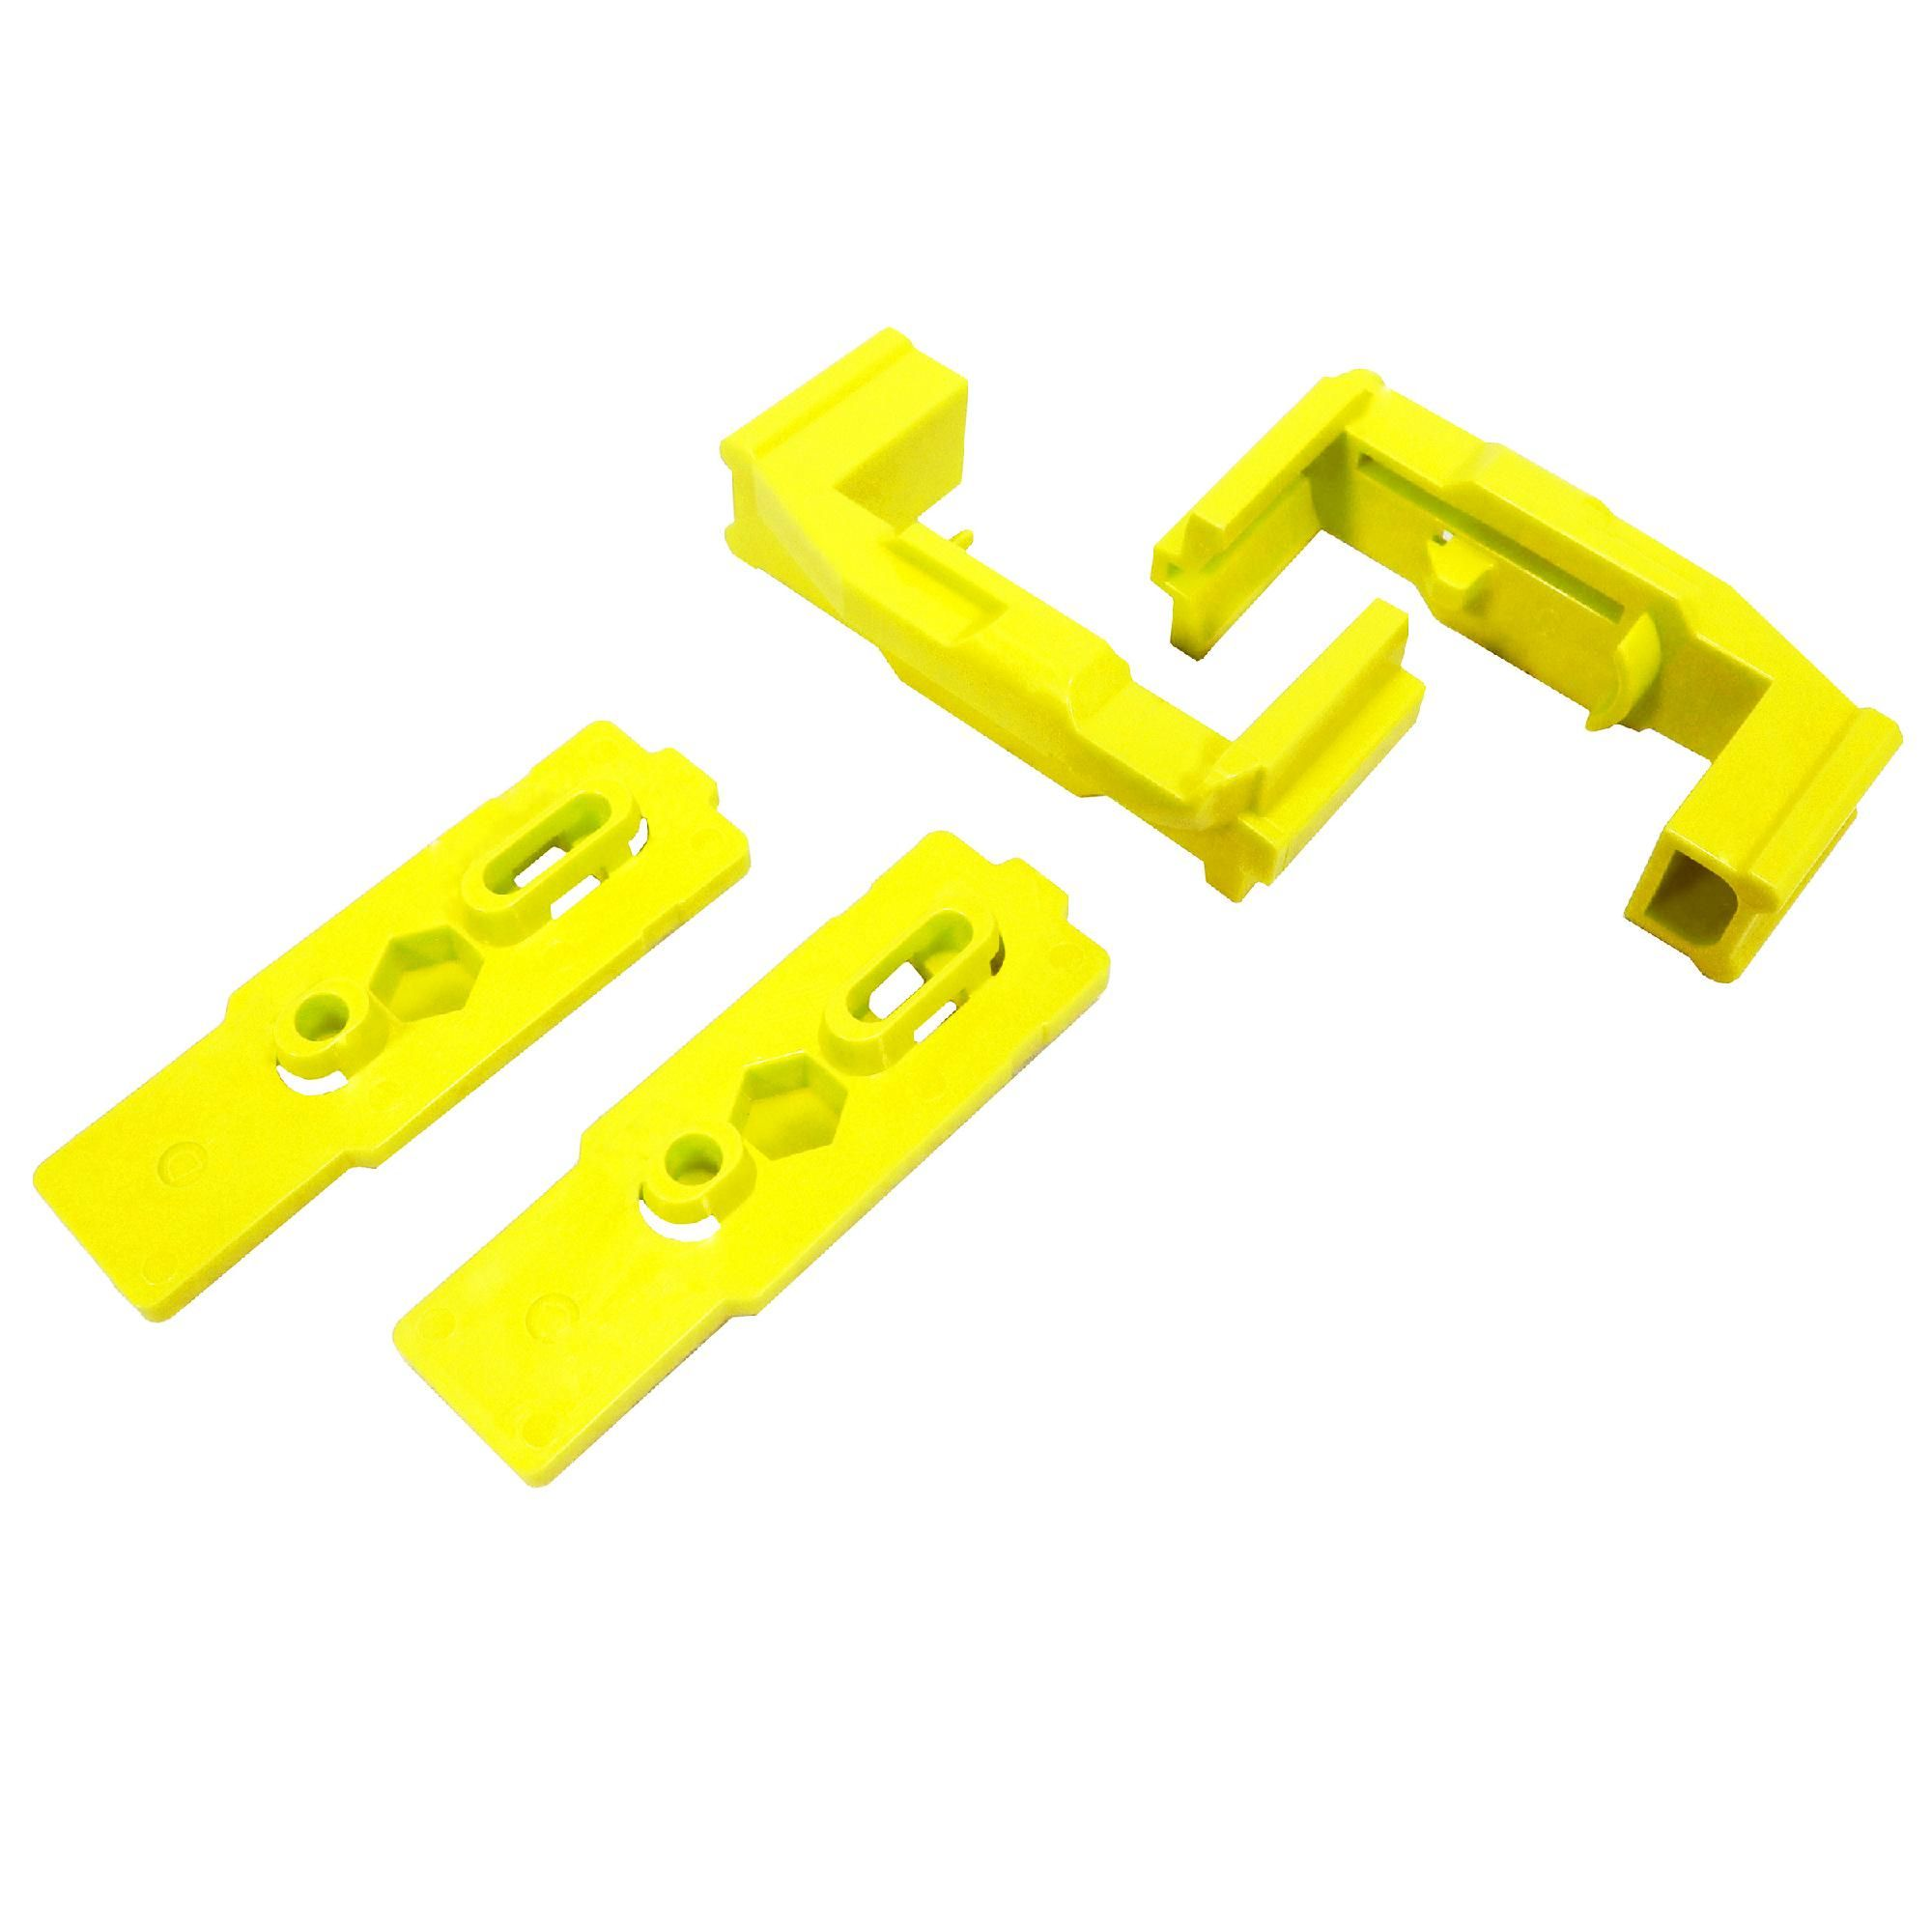 HexID Colored Magazine - Yellow, Package of 2